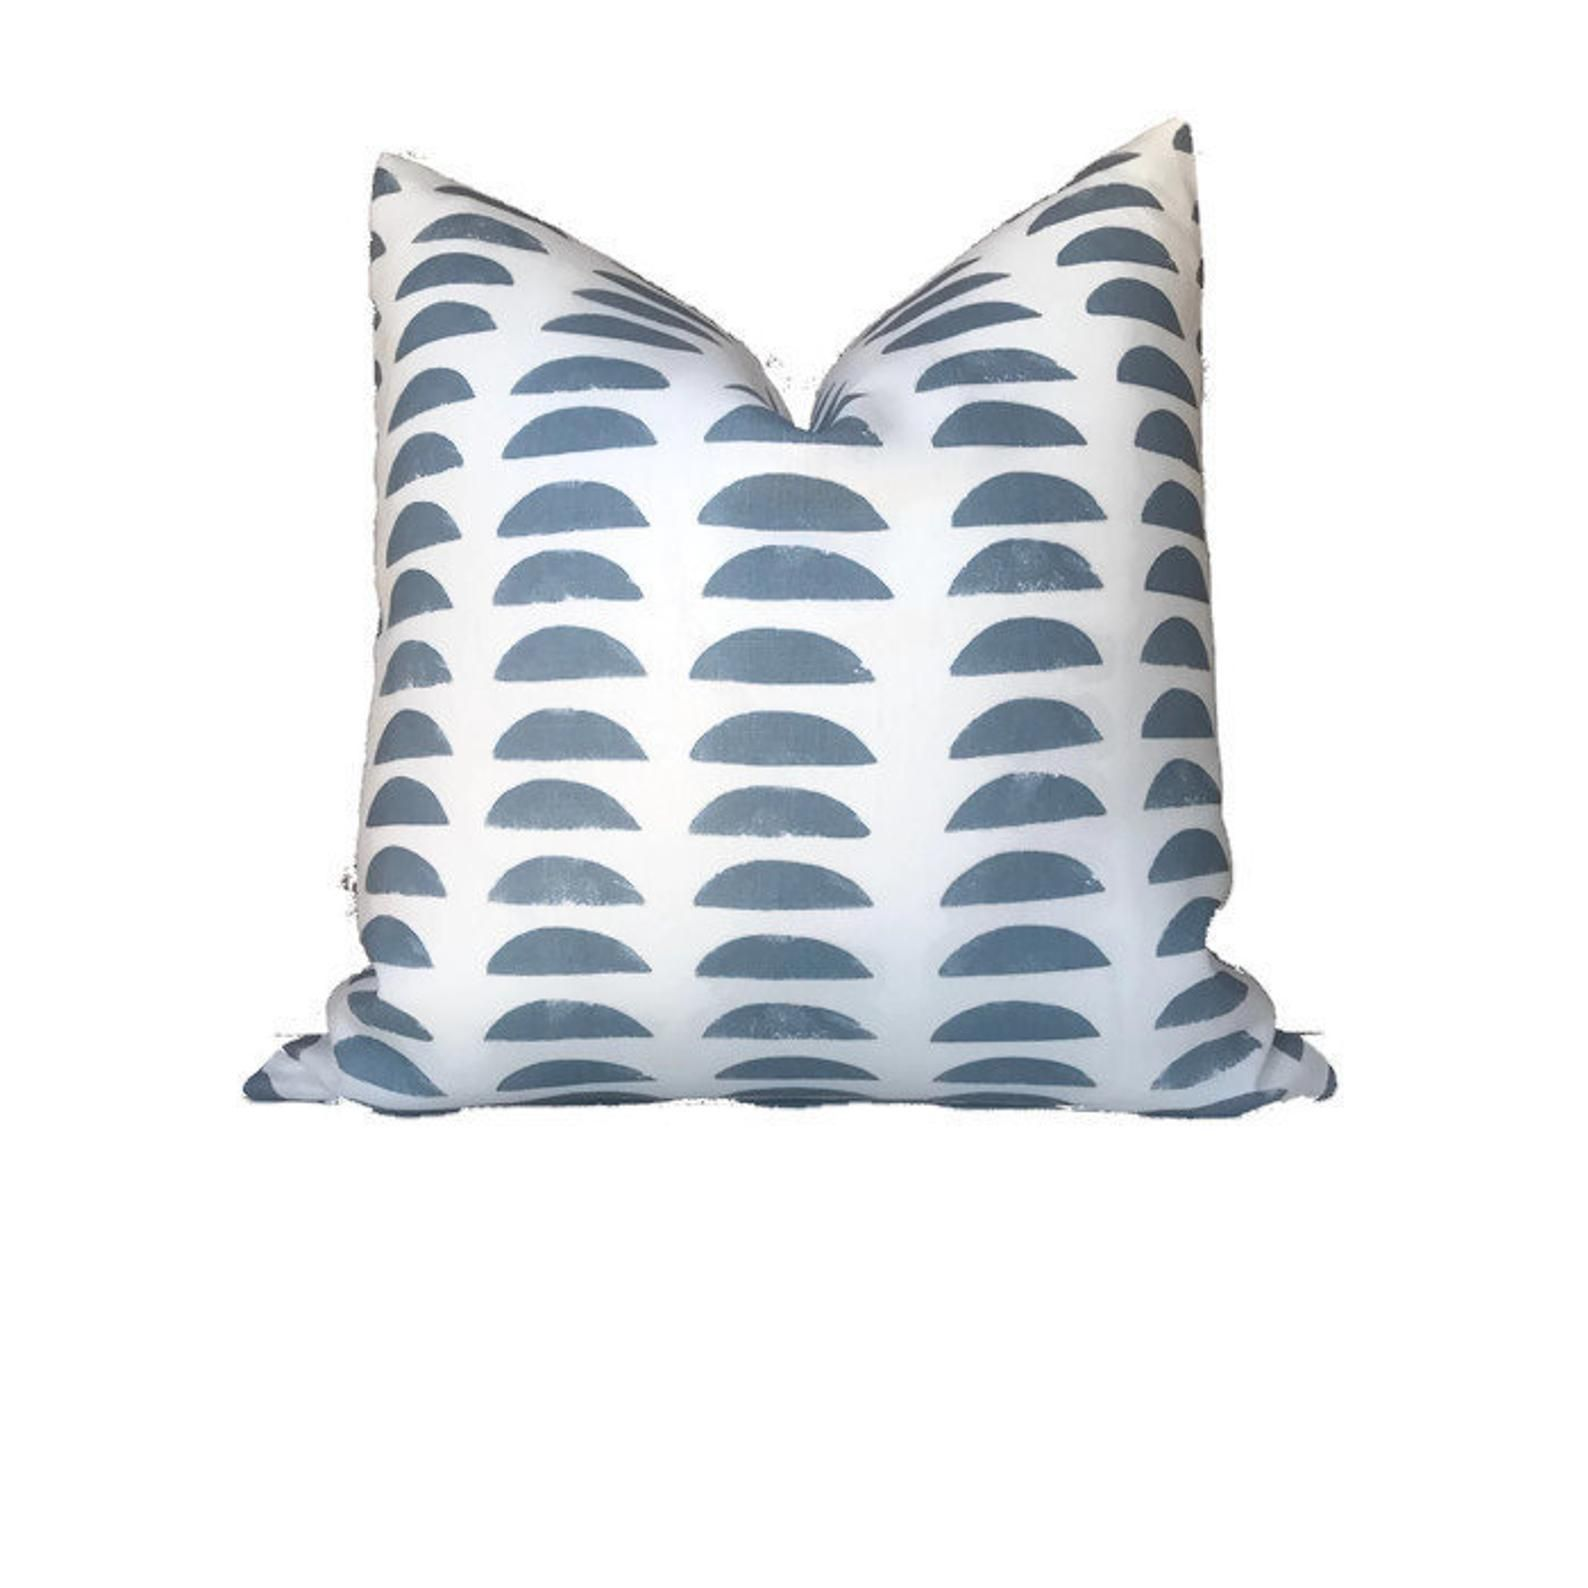 The Hills Pillow Cover In Slate Blue Decorative Throw Pillow Etsy Pillows Pillow Covers Hand Woven Pillows